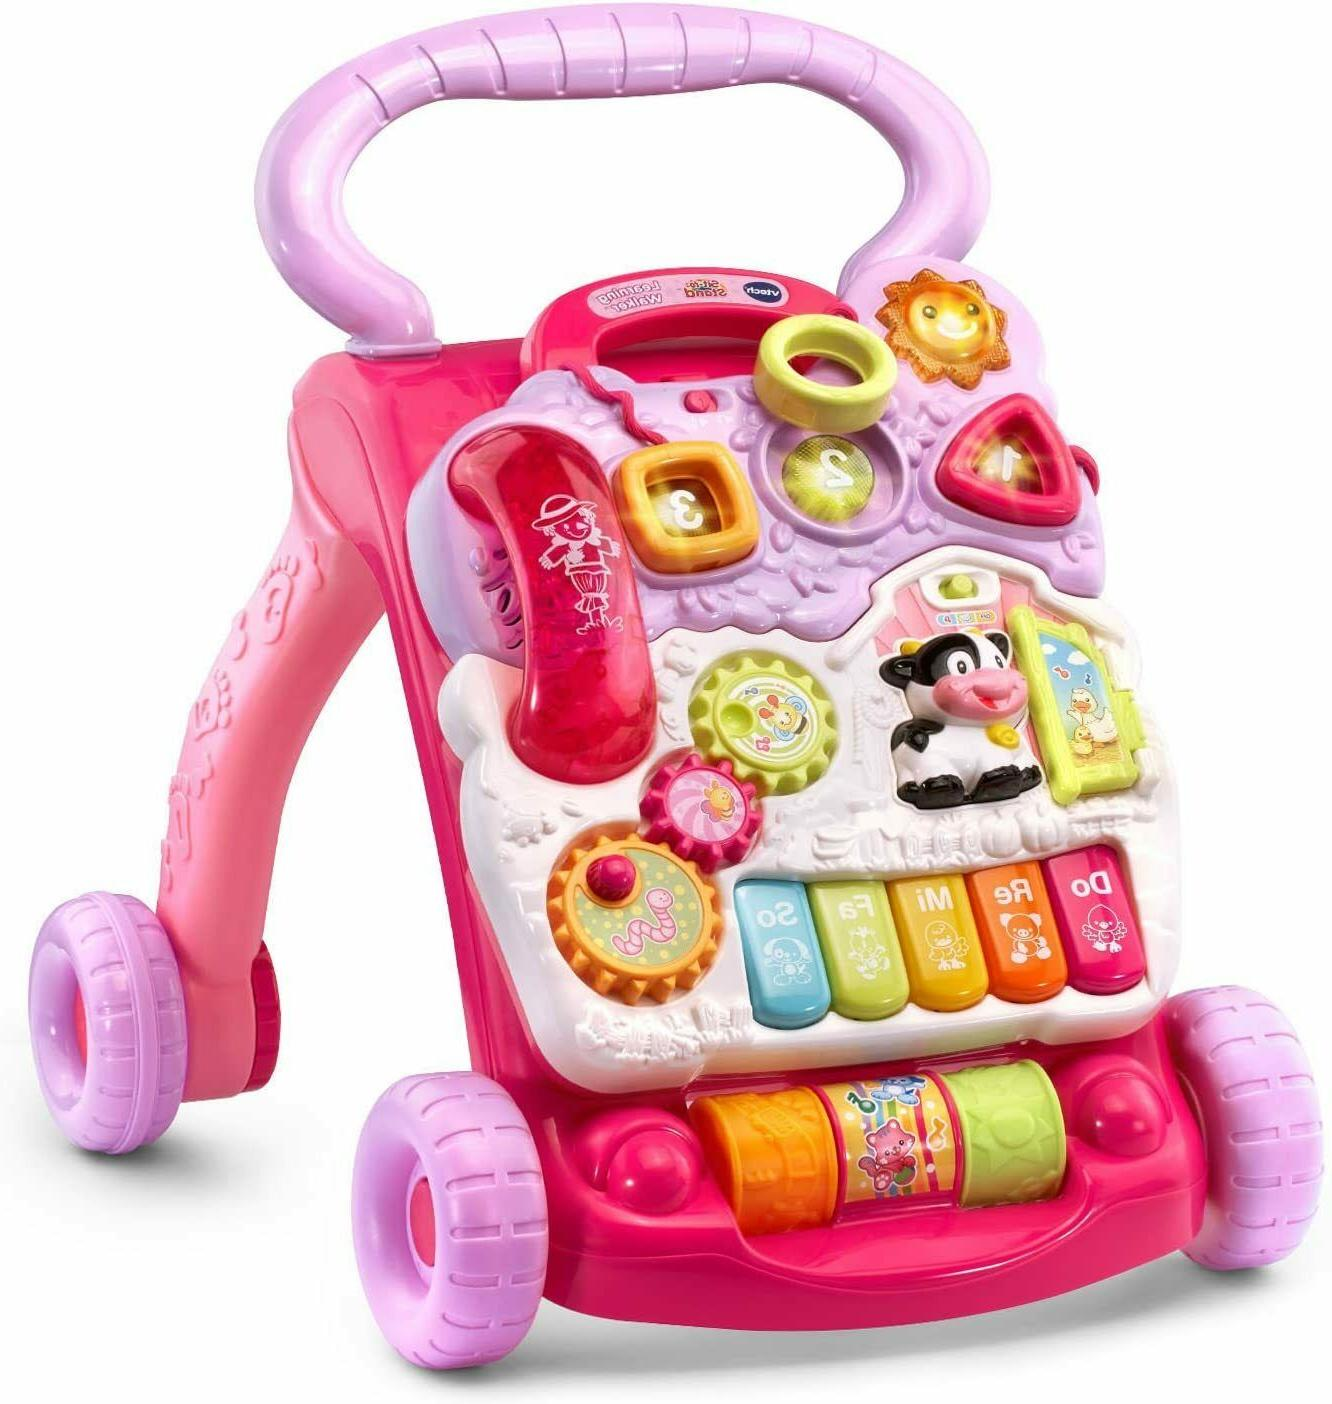 VTech Baby Push Toddler Sit-to-Stand Pink